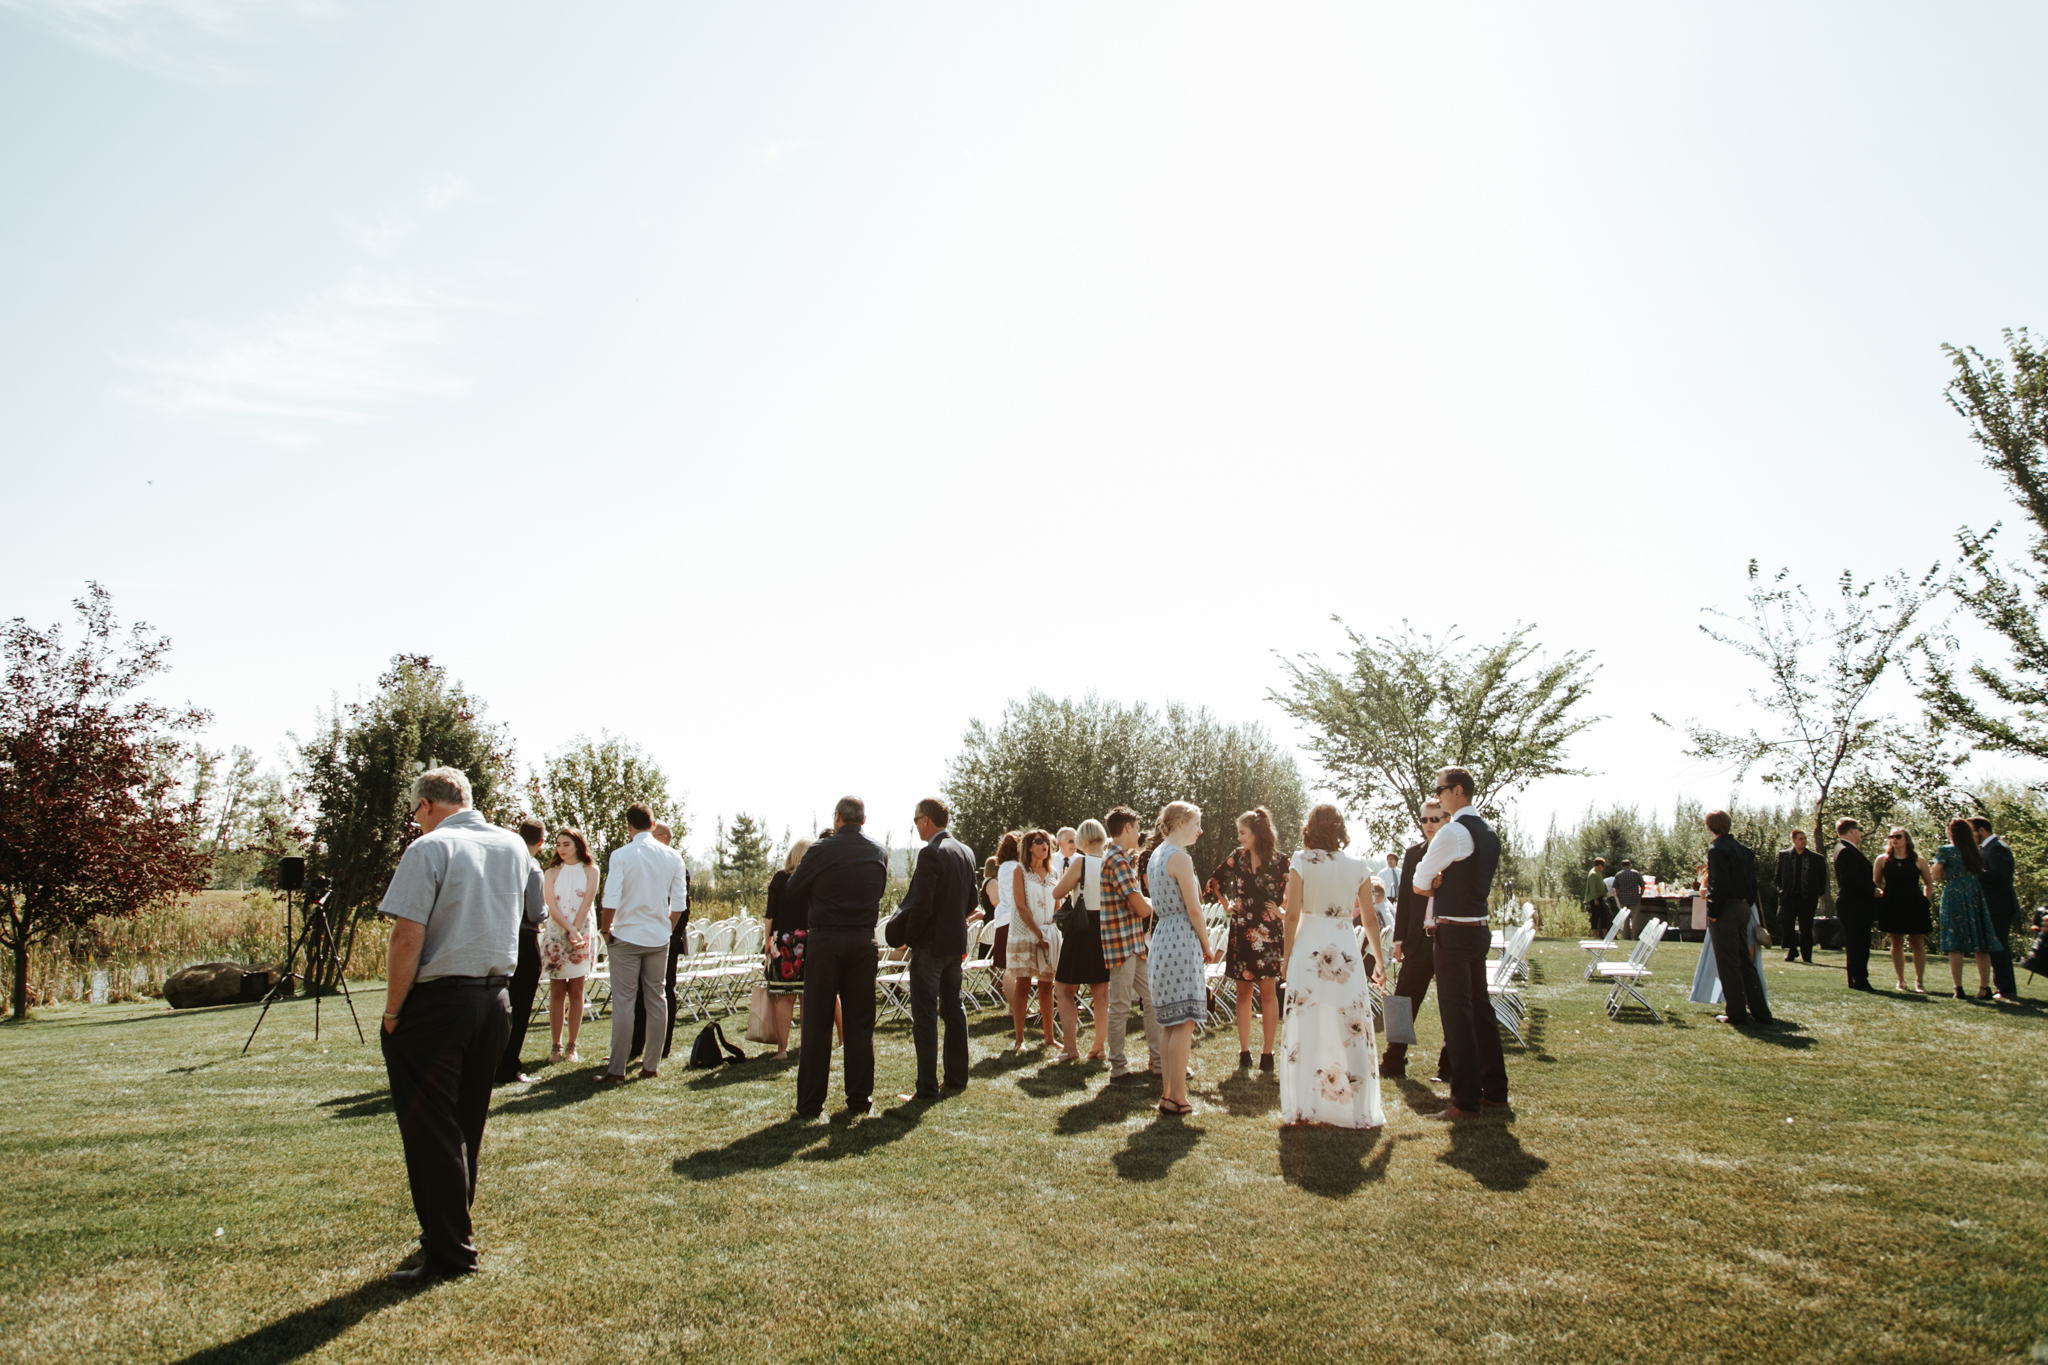 red-deer-wedding-photographer-love-and-be-loved-photography-emily-gab-photo-image-picture-64.jpg